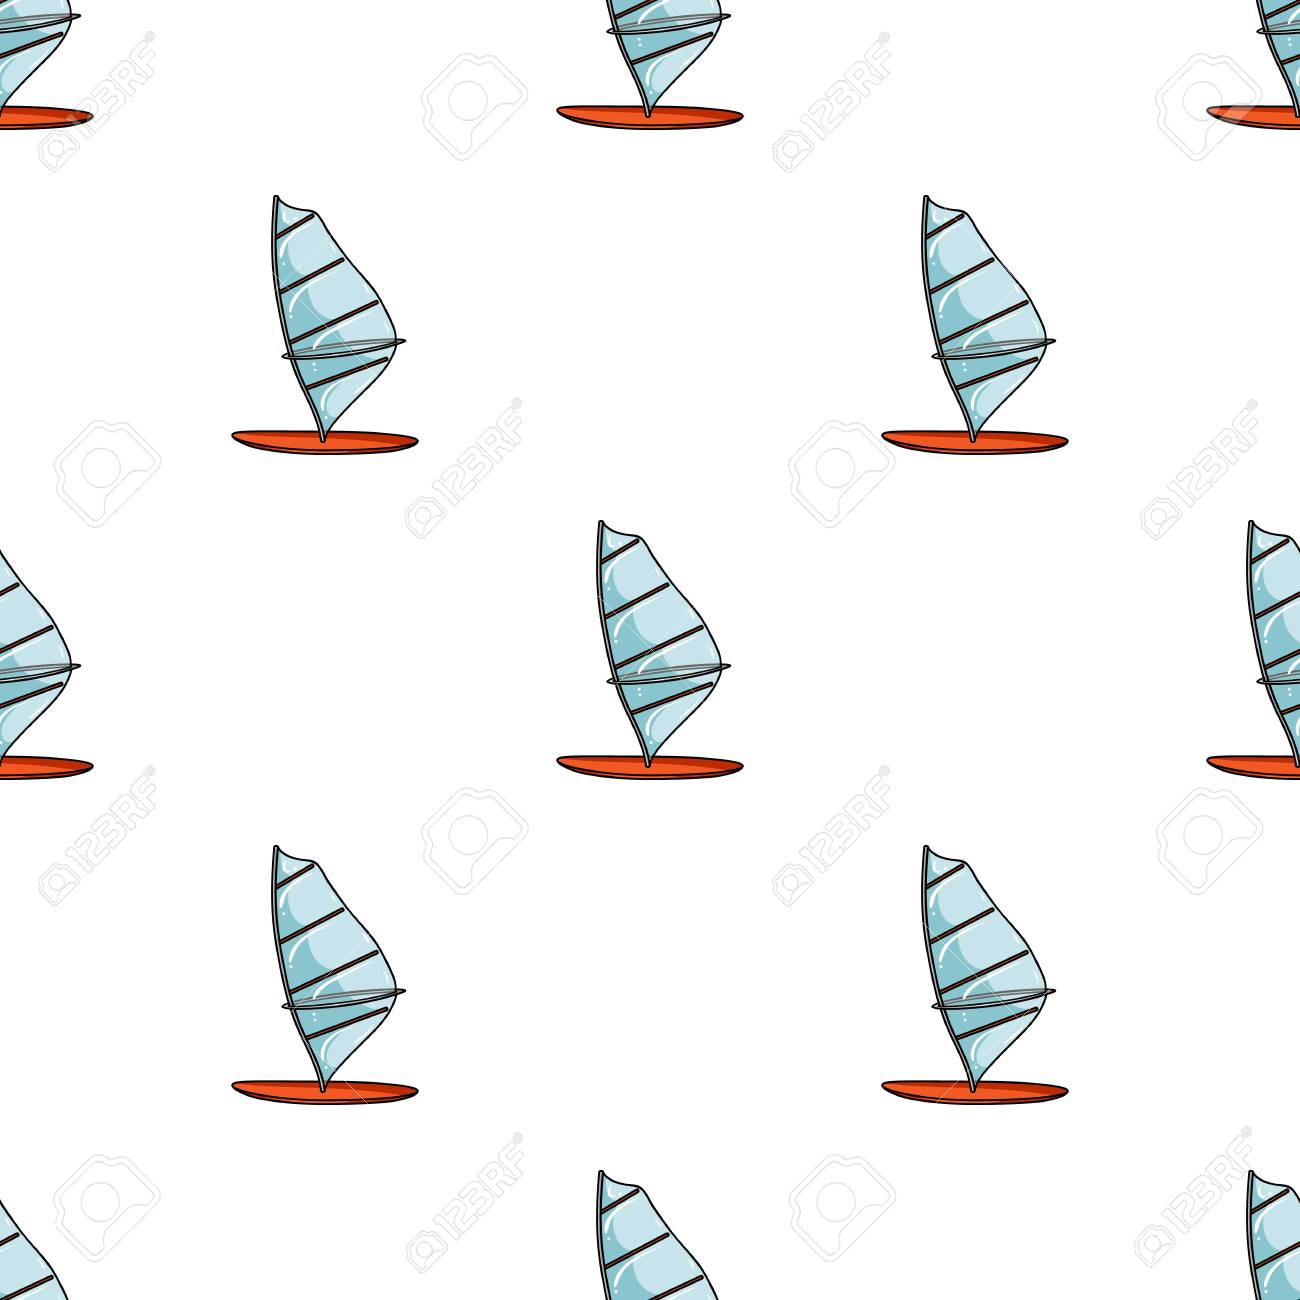 Windsurf board icon in cartoon style isolated on white background